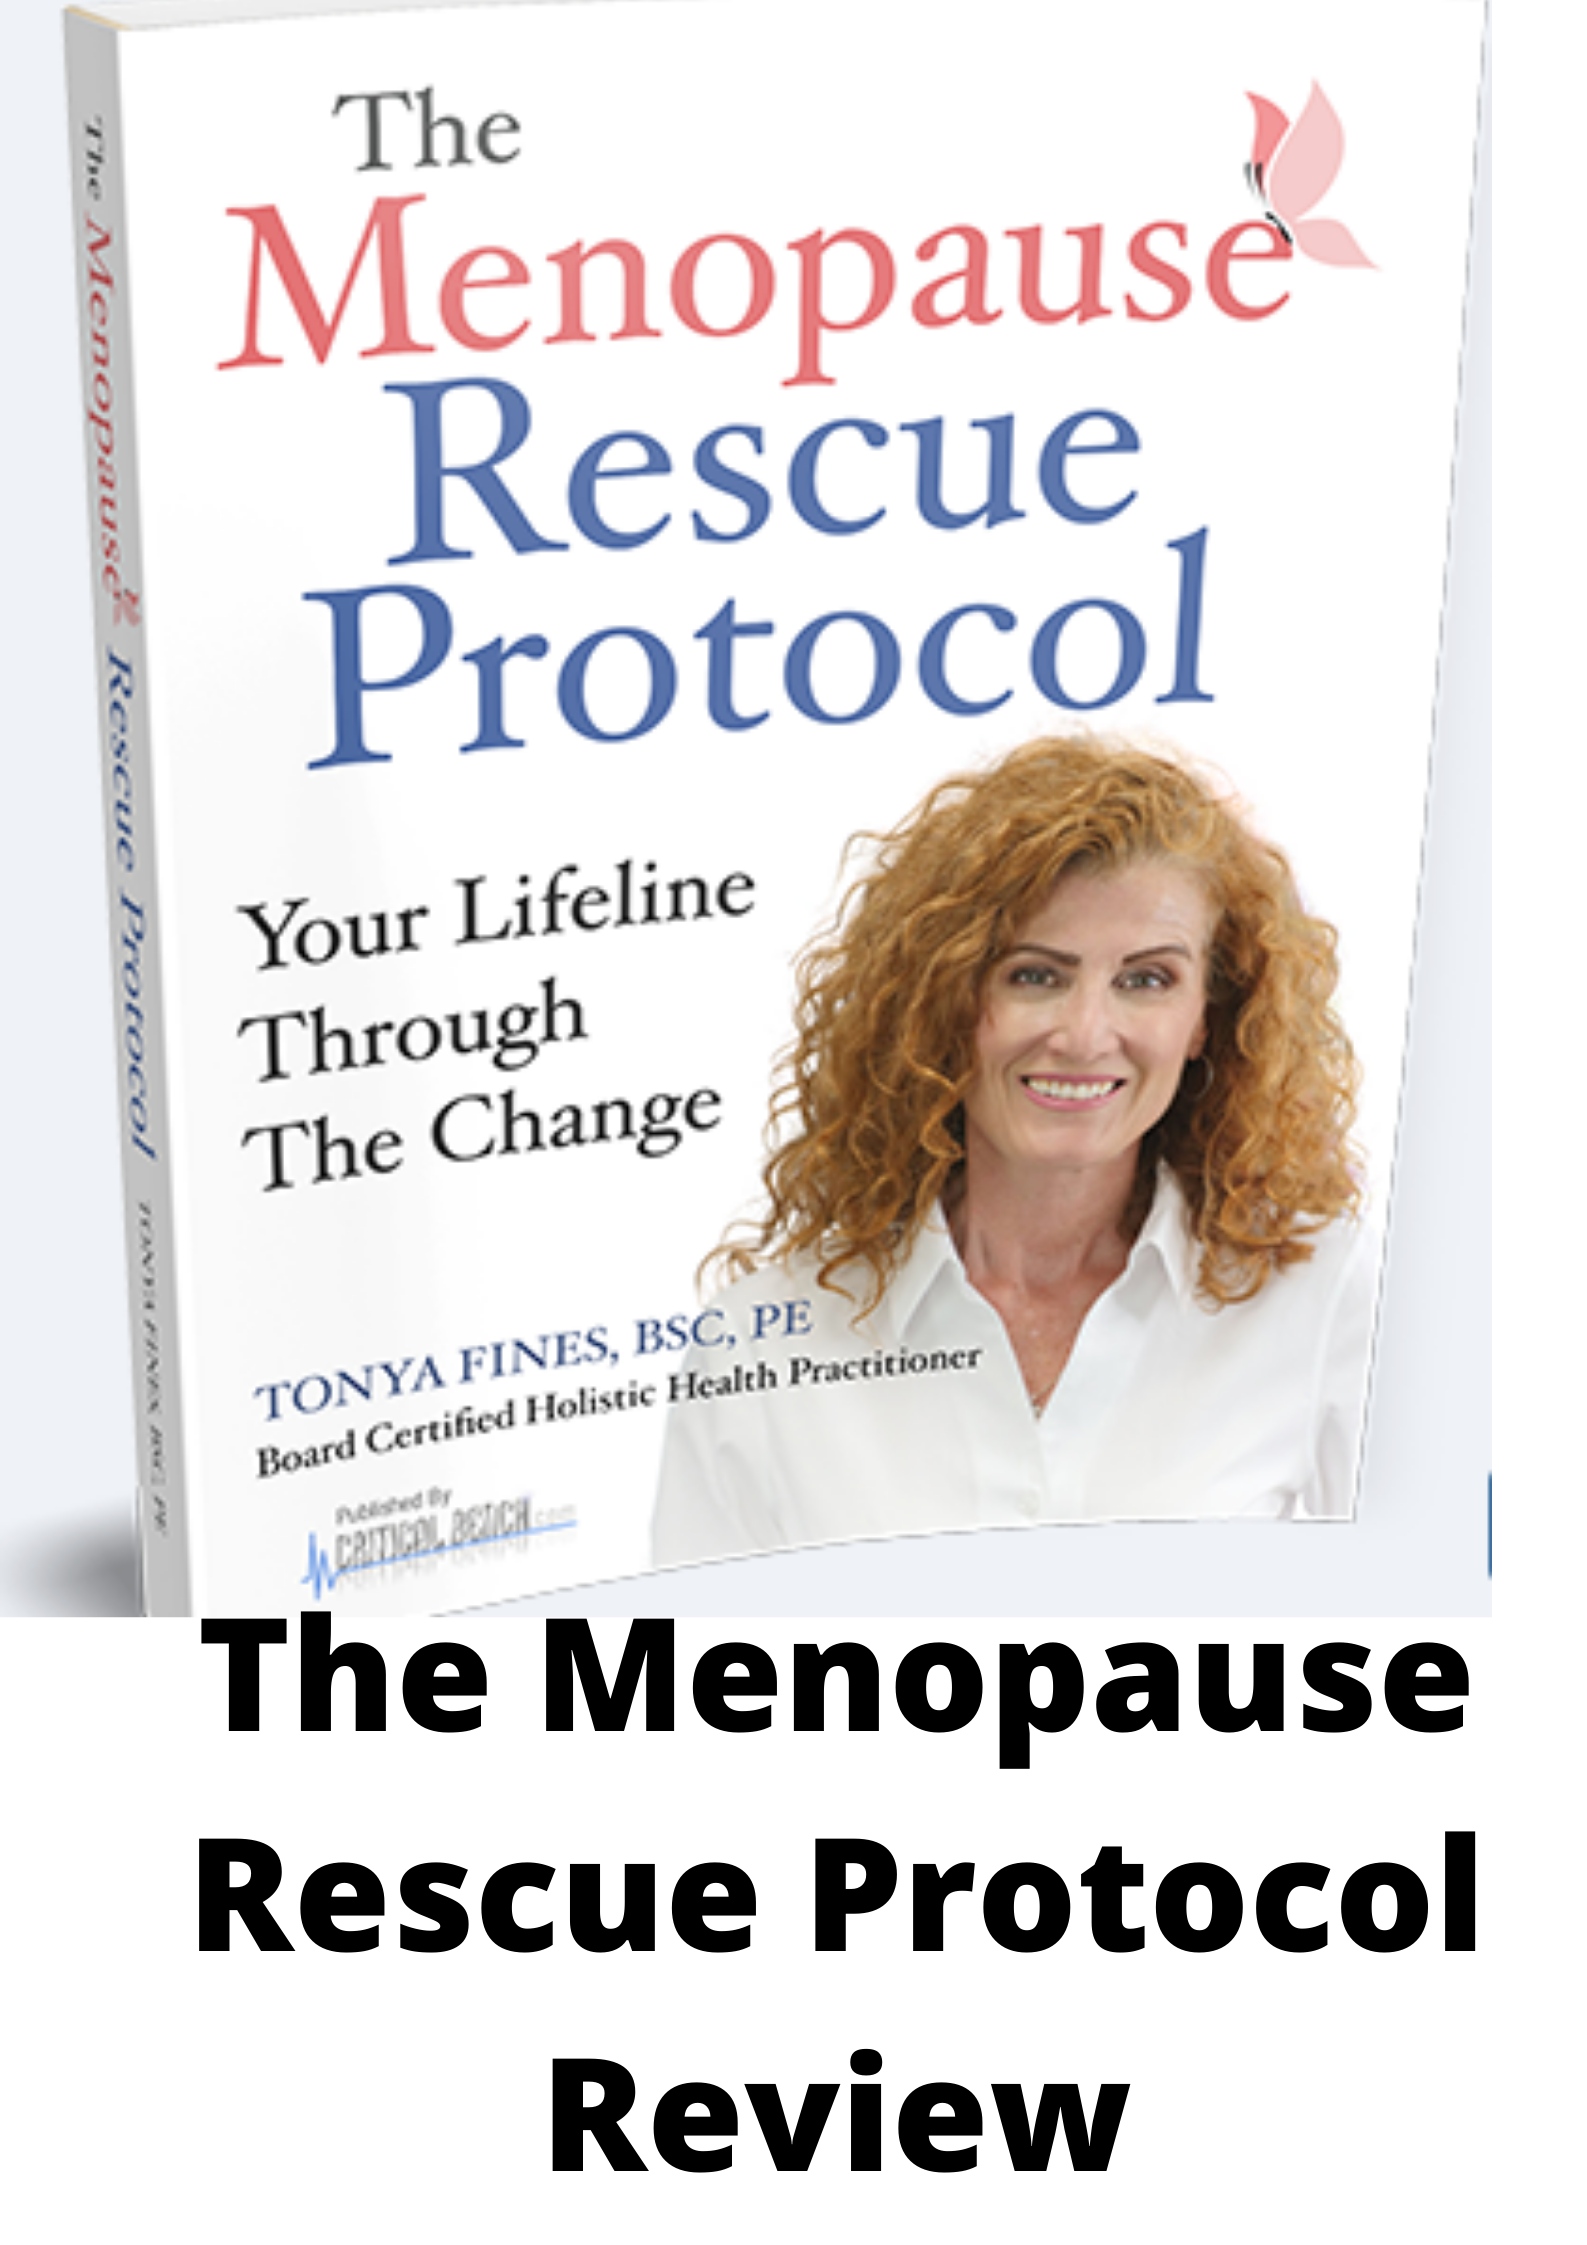 The Menopause Rescue Protocol Reviews-What you need to Know